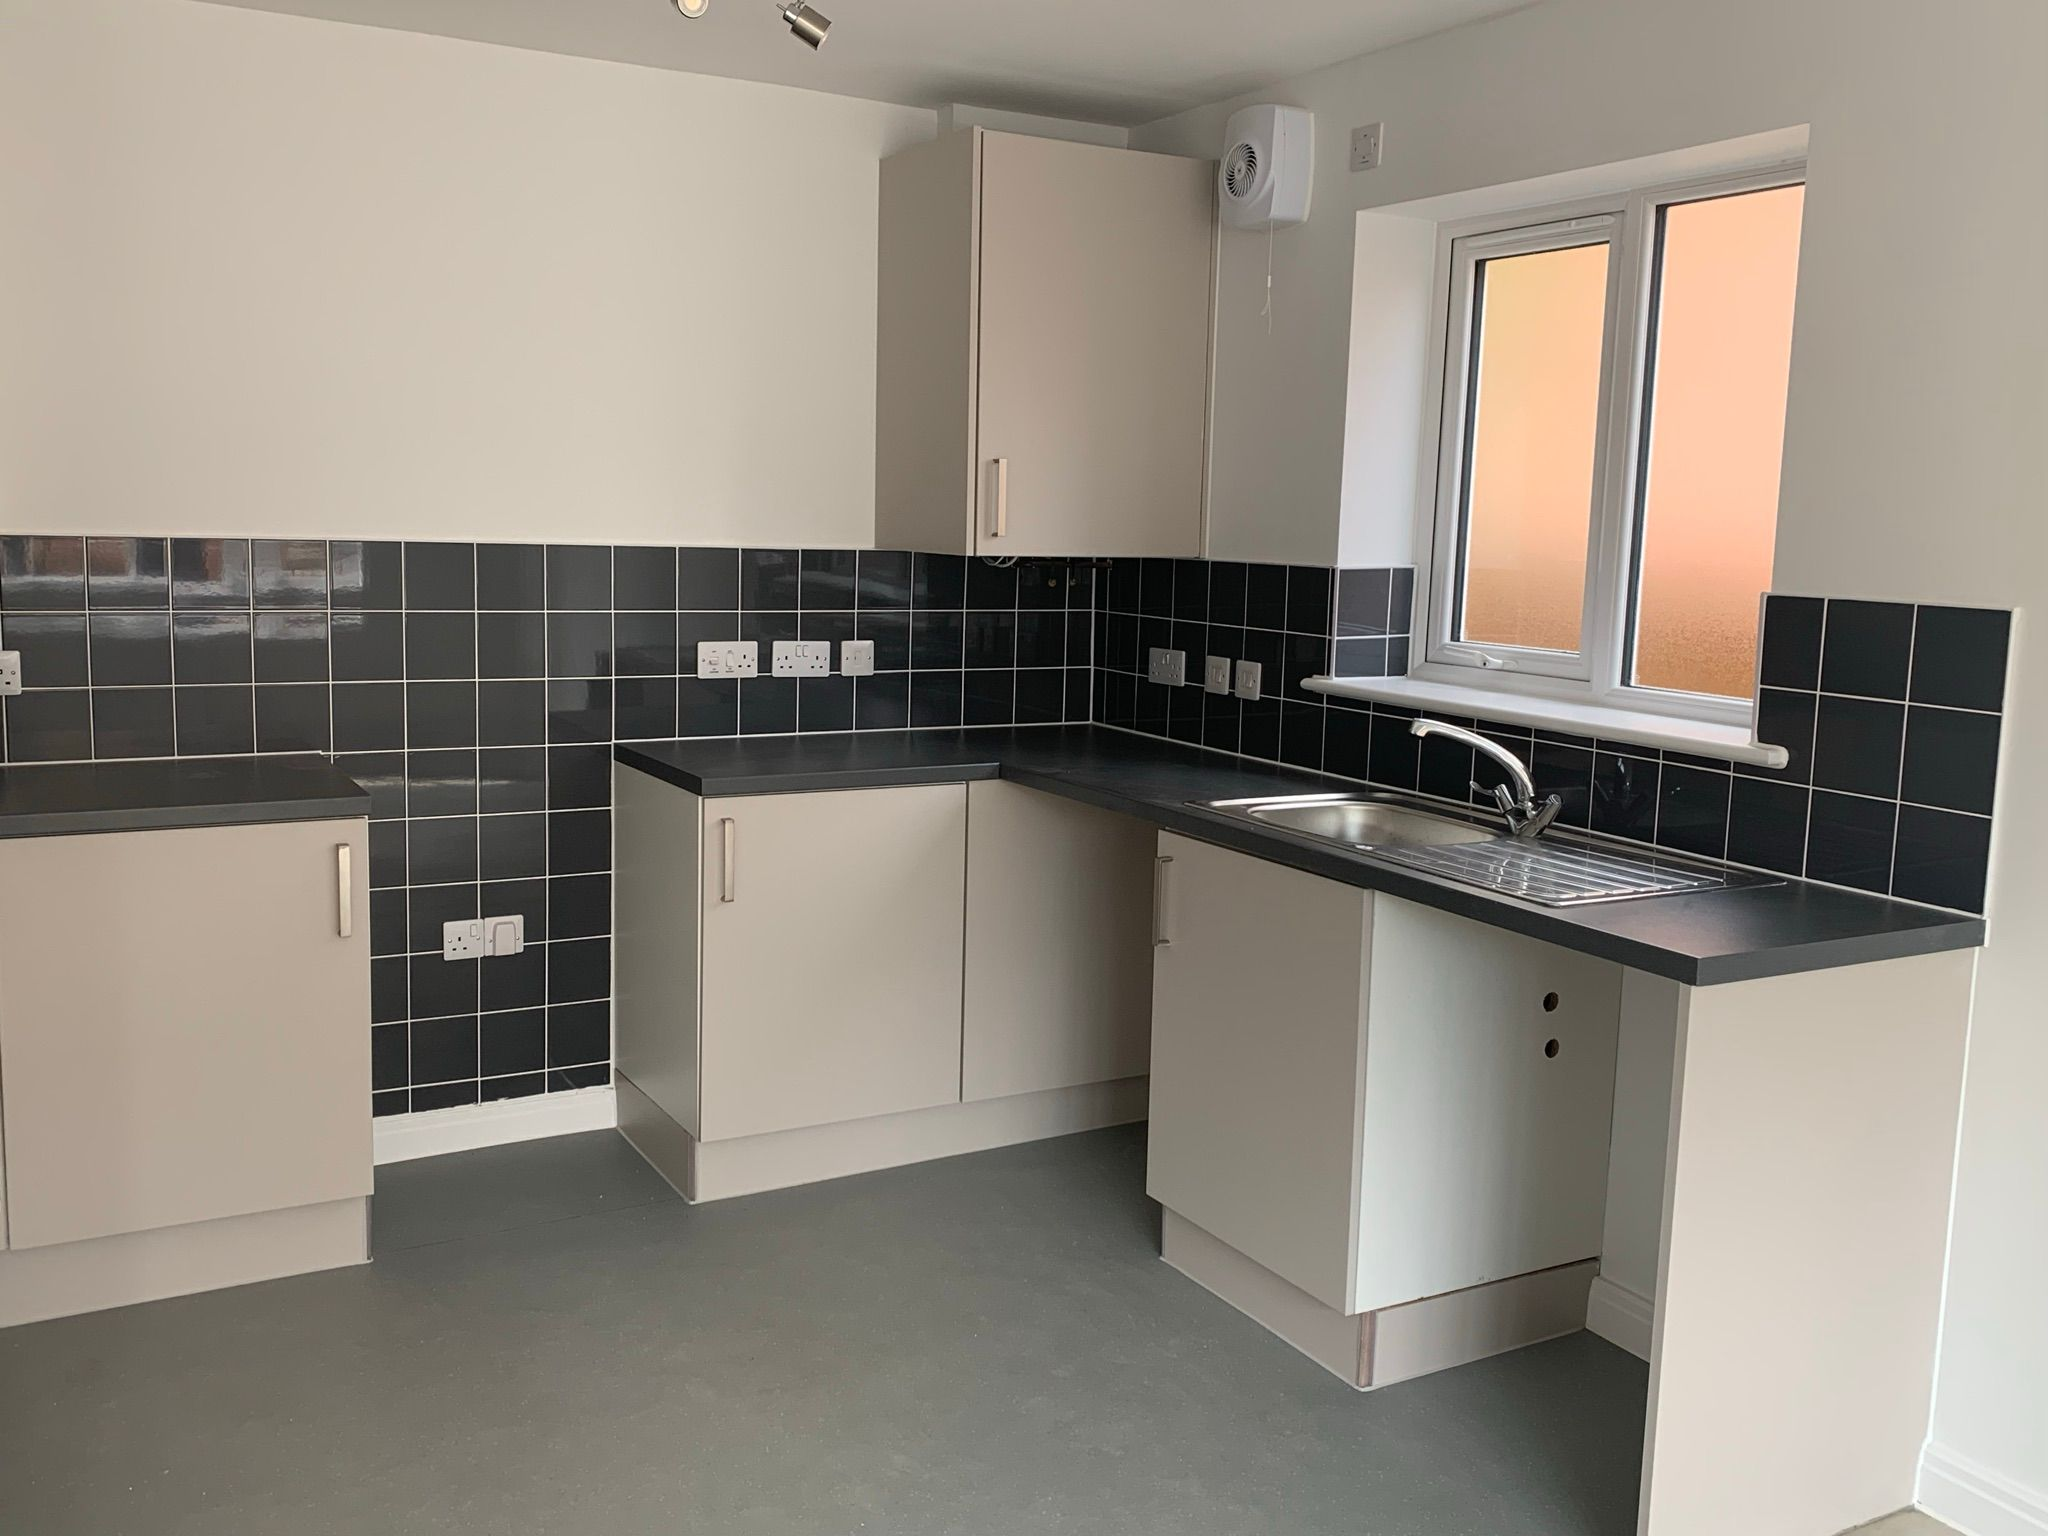 Image 1 of 1 of Kitchen/Lounge, on Accommodation Comprising for .